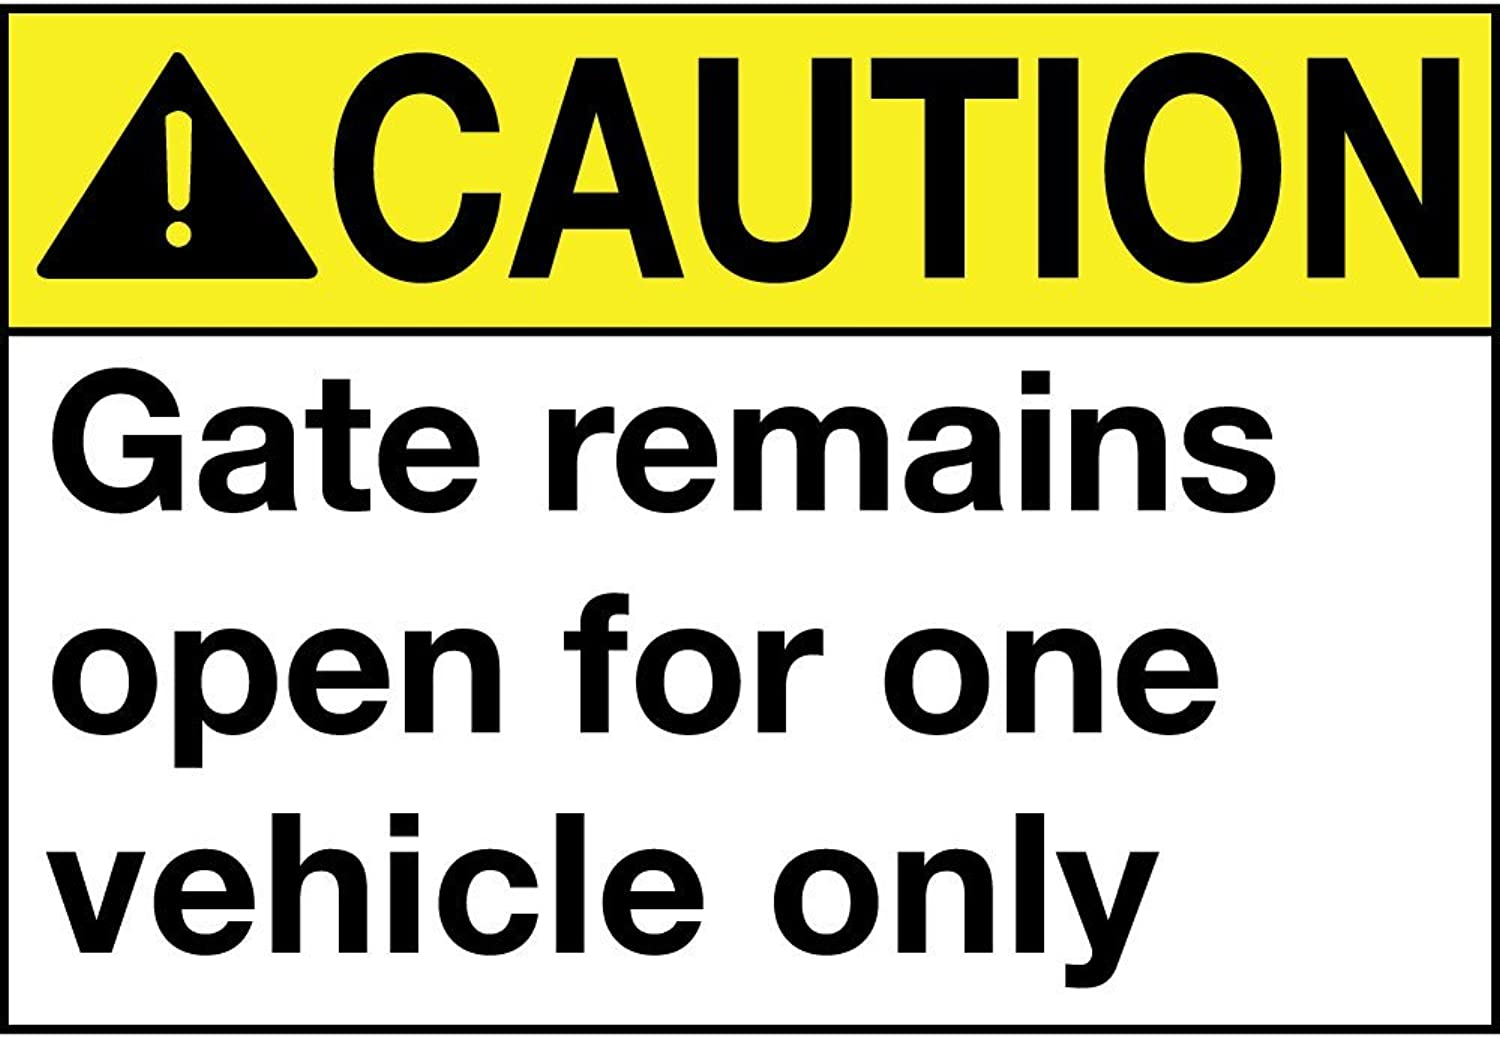 Caution Gate Remains Open for One Vehicle Only Aluminum Metal Sign 24 in x 18 in